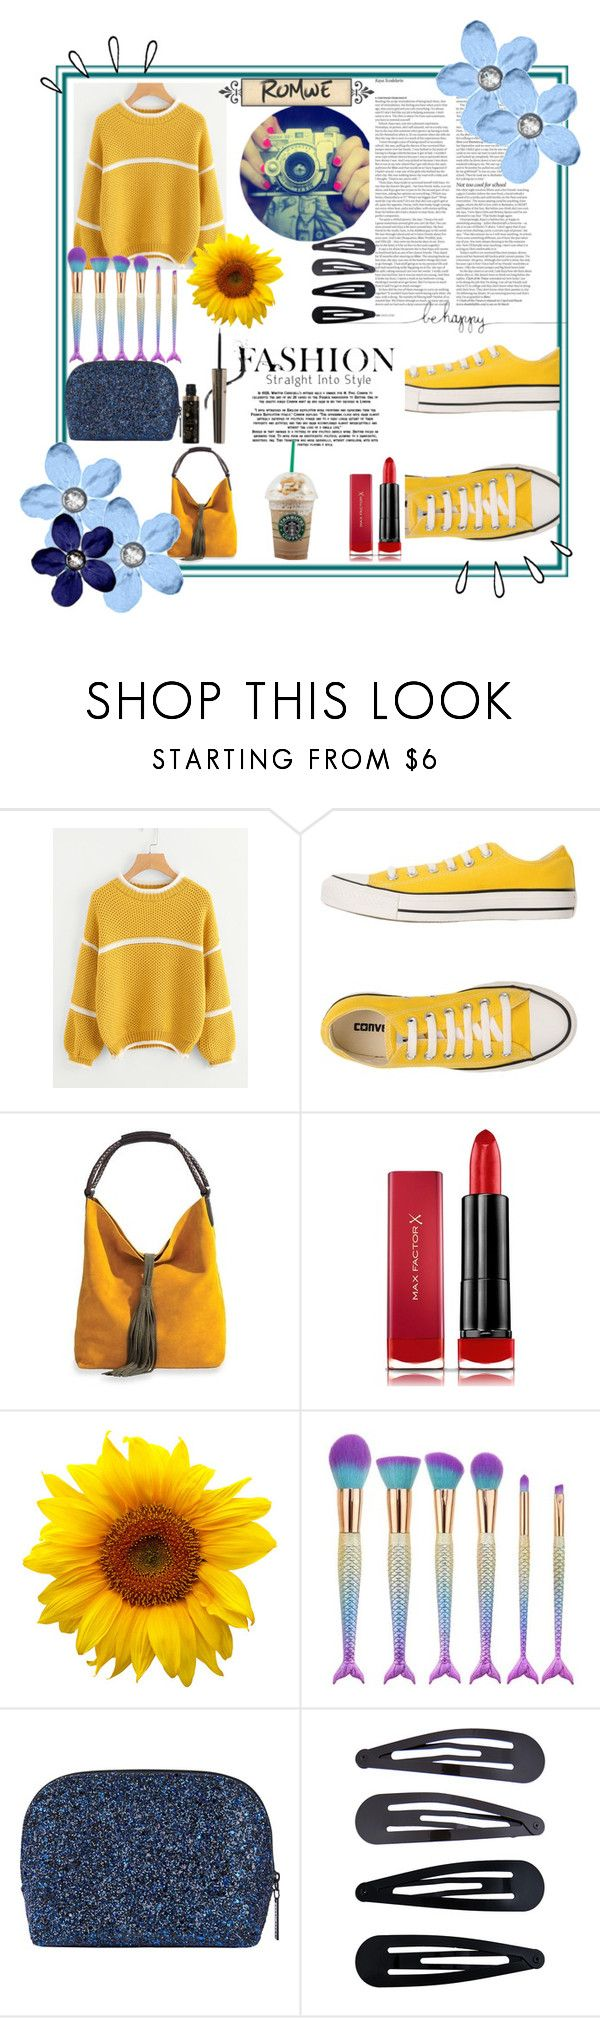 """contest"" by ajsajunuzovic ❤ liked on Polyvore featuring ASOS, Converse, Max Factor, Old Navy, Bobbi Brown Cosmetics, Accessorize and 100% Pure"